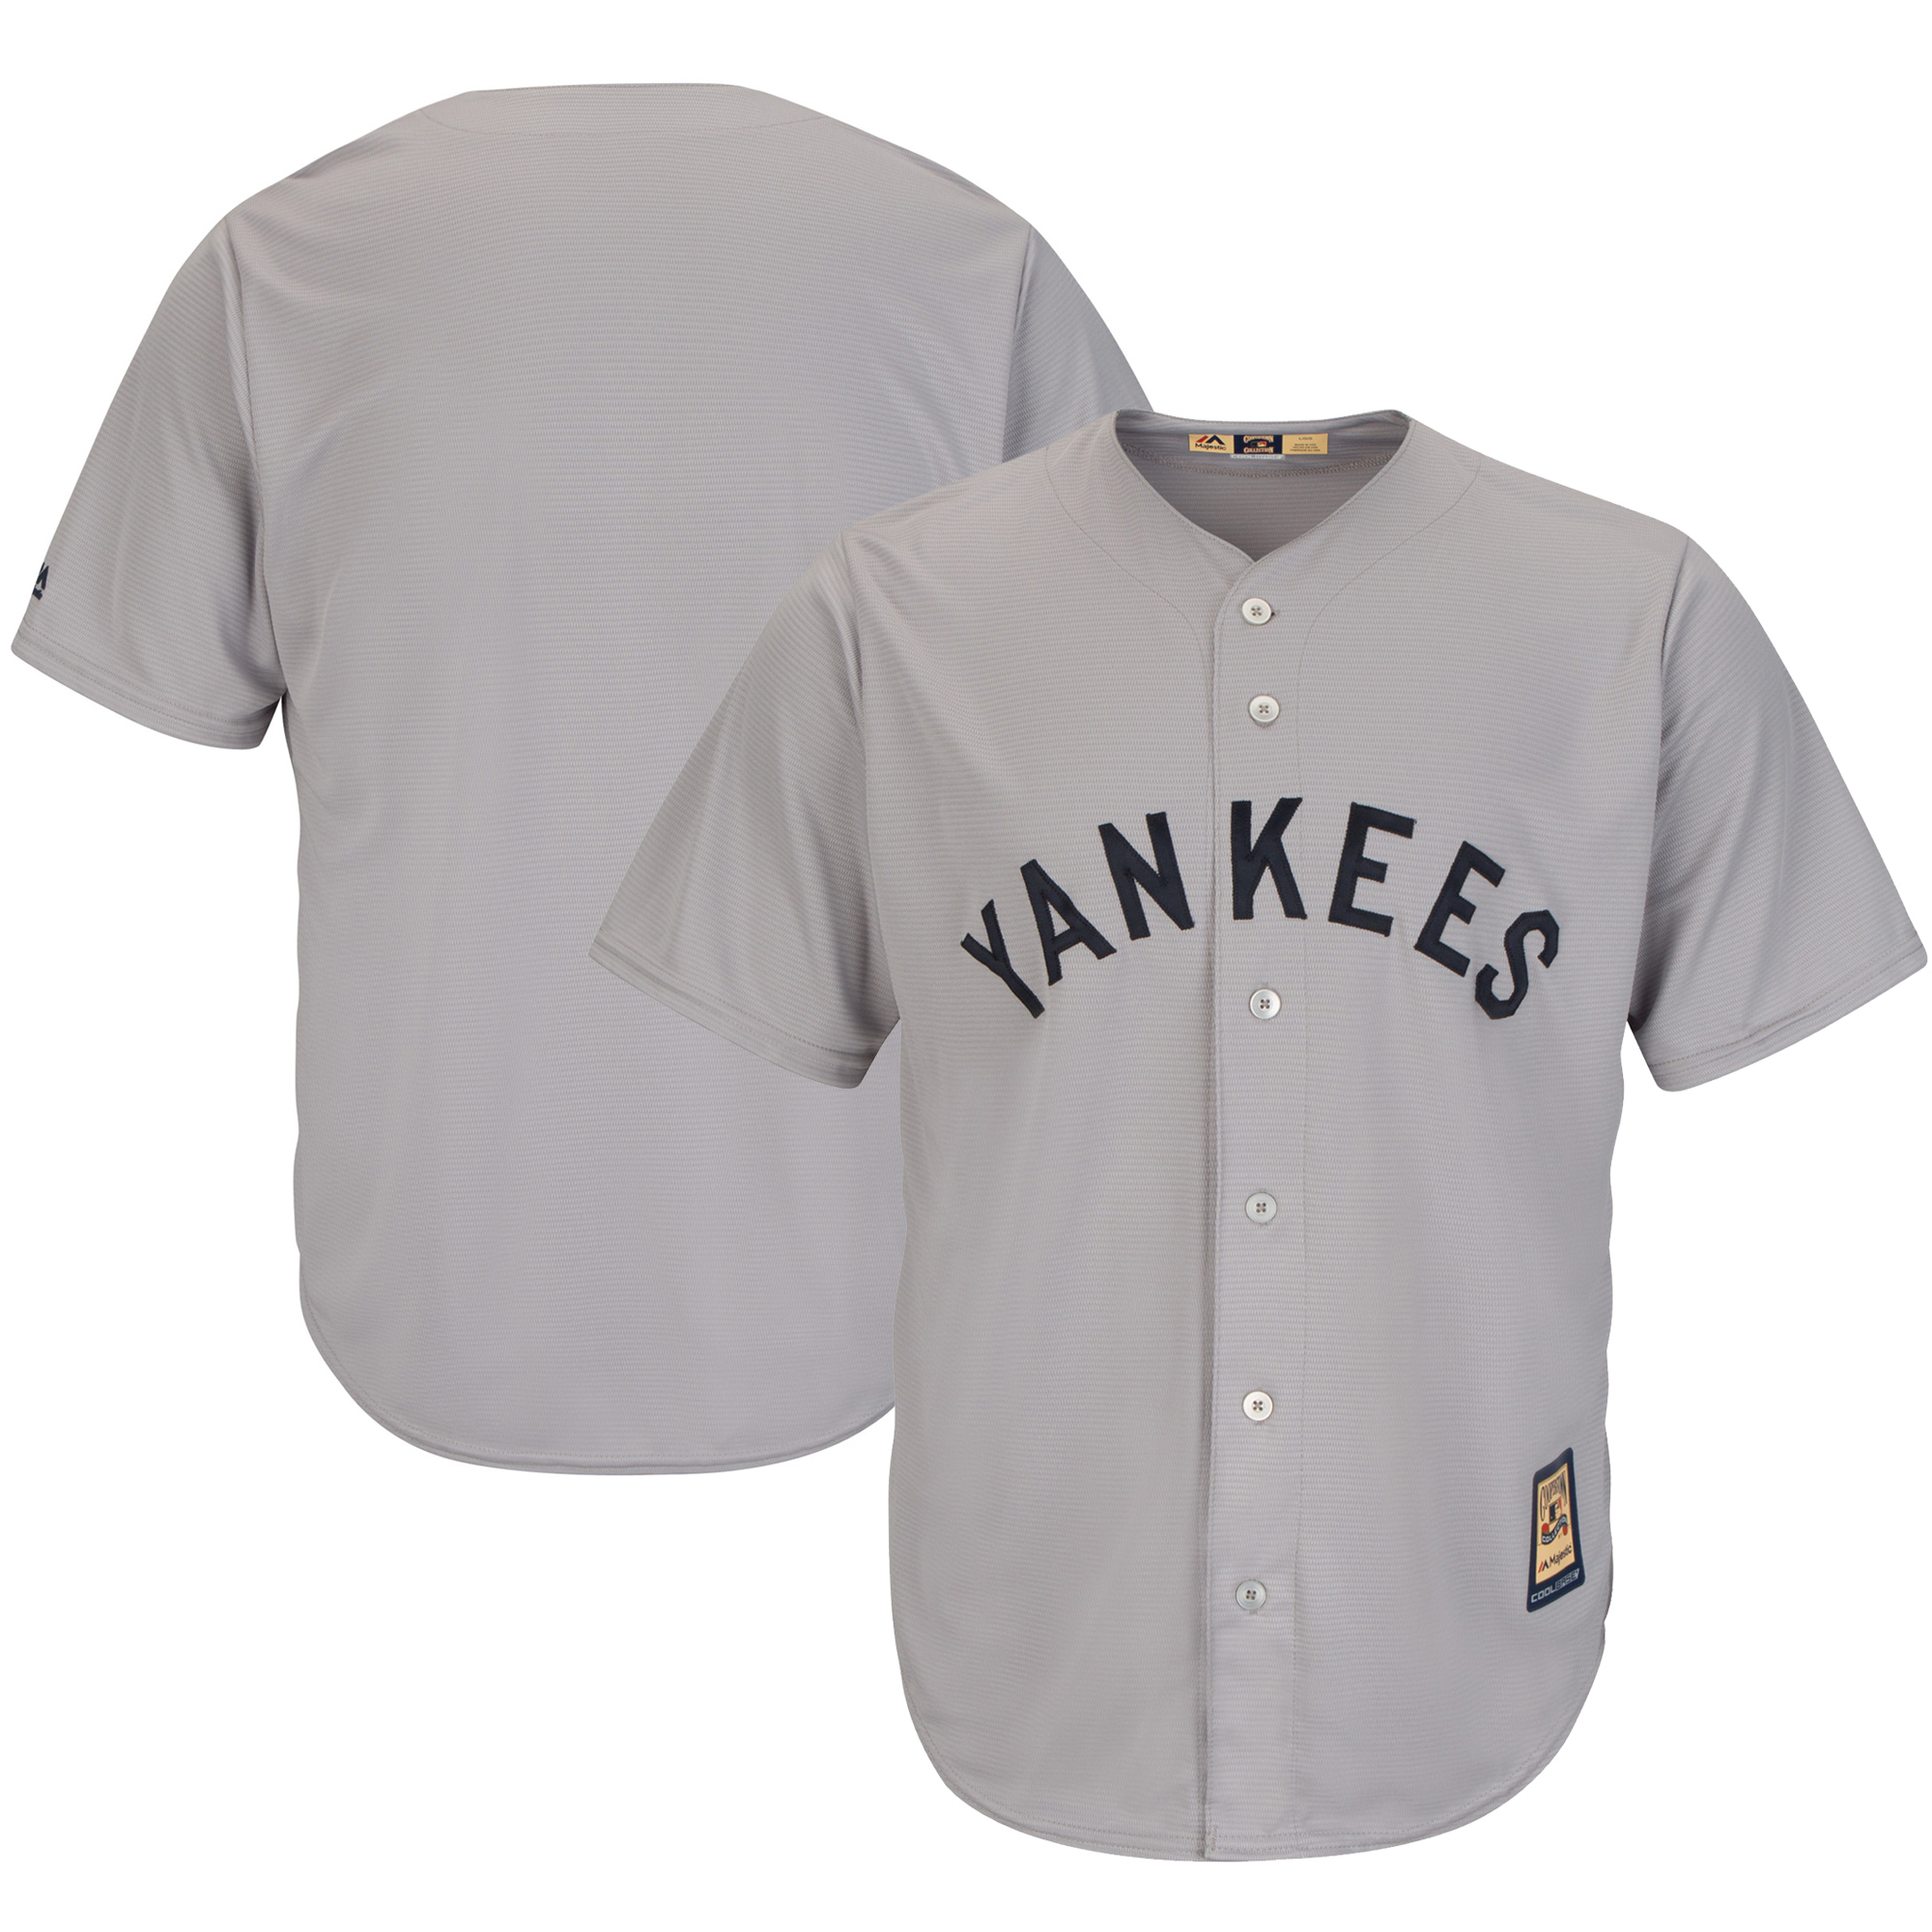 New York Yankees Majestic Cooperstown Cool Base Team Jersey Gray by MAJESTIC LSG